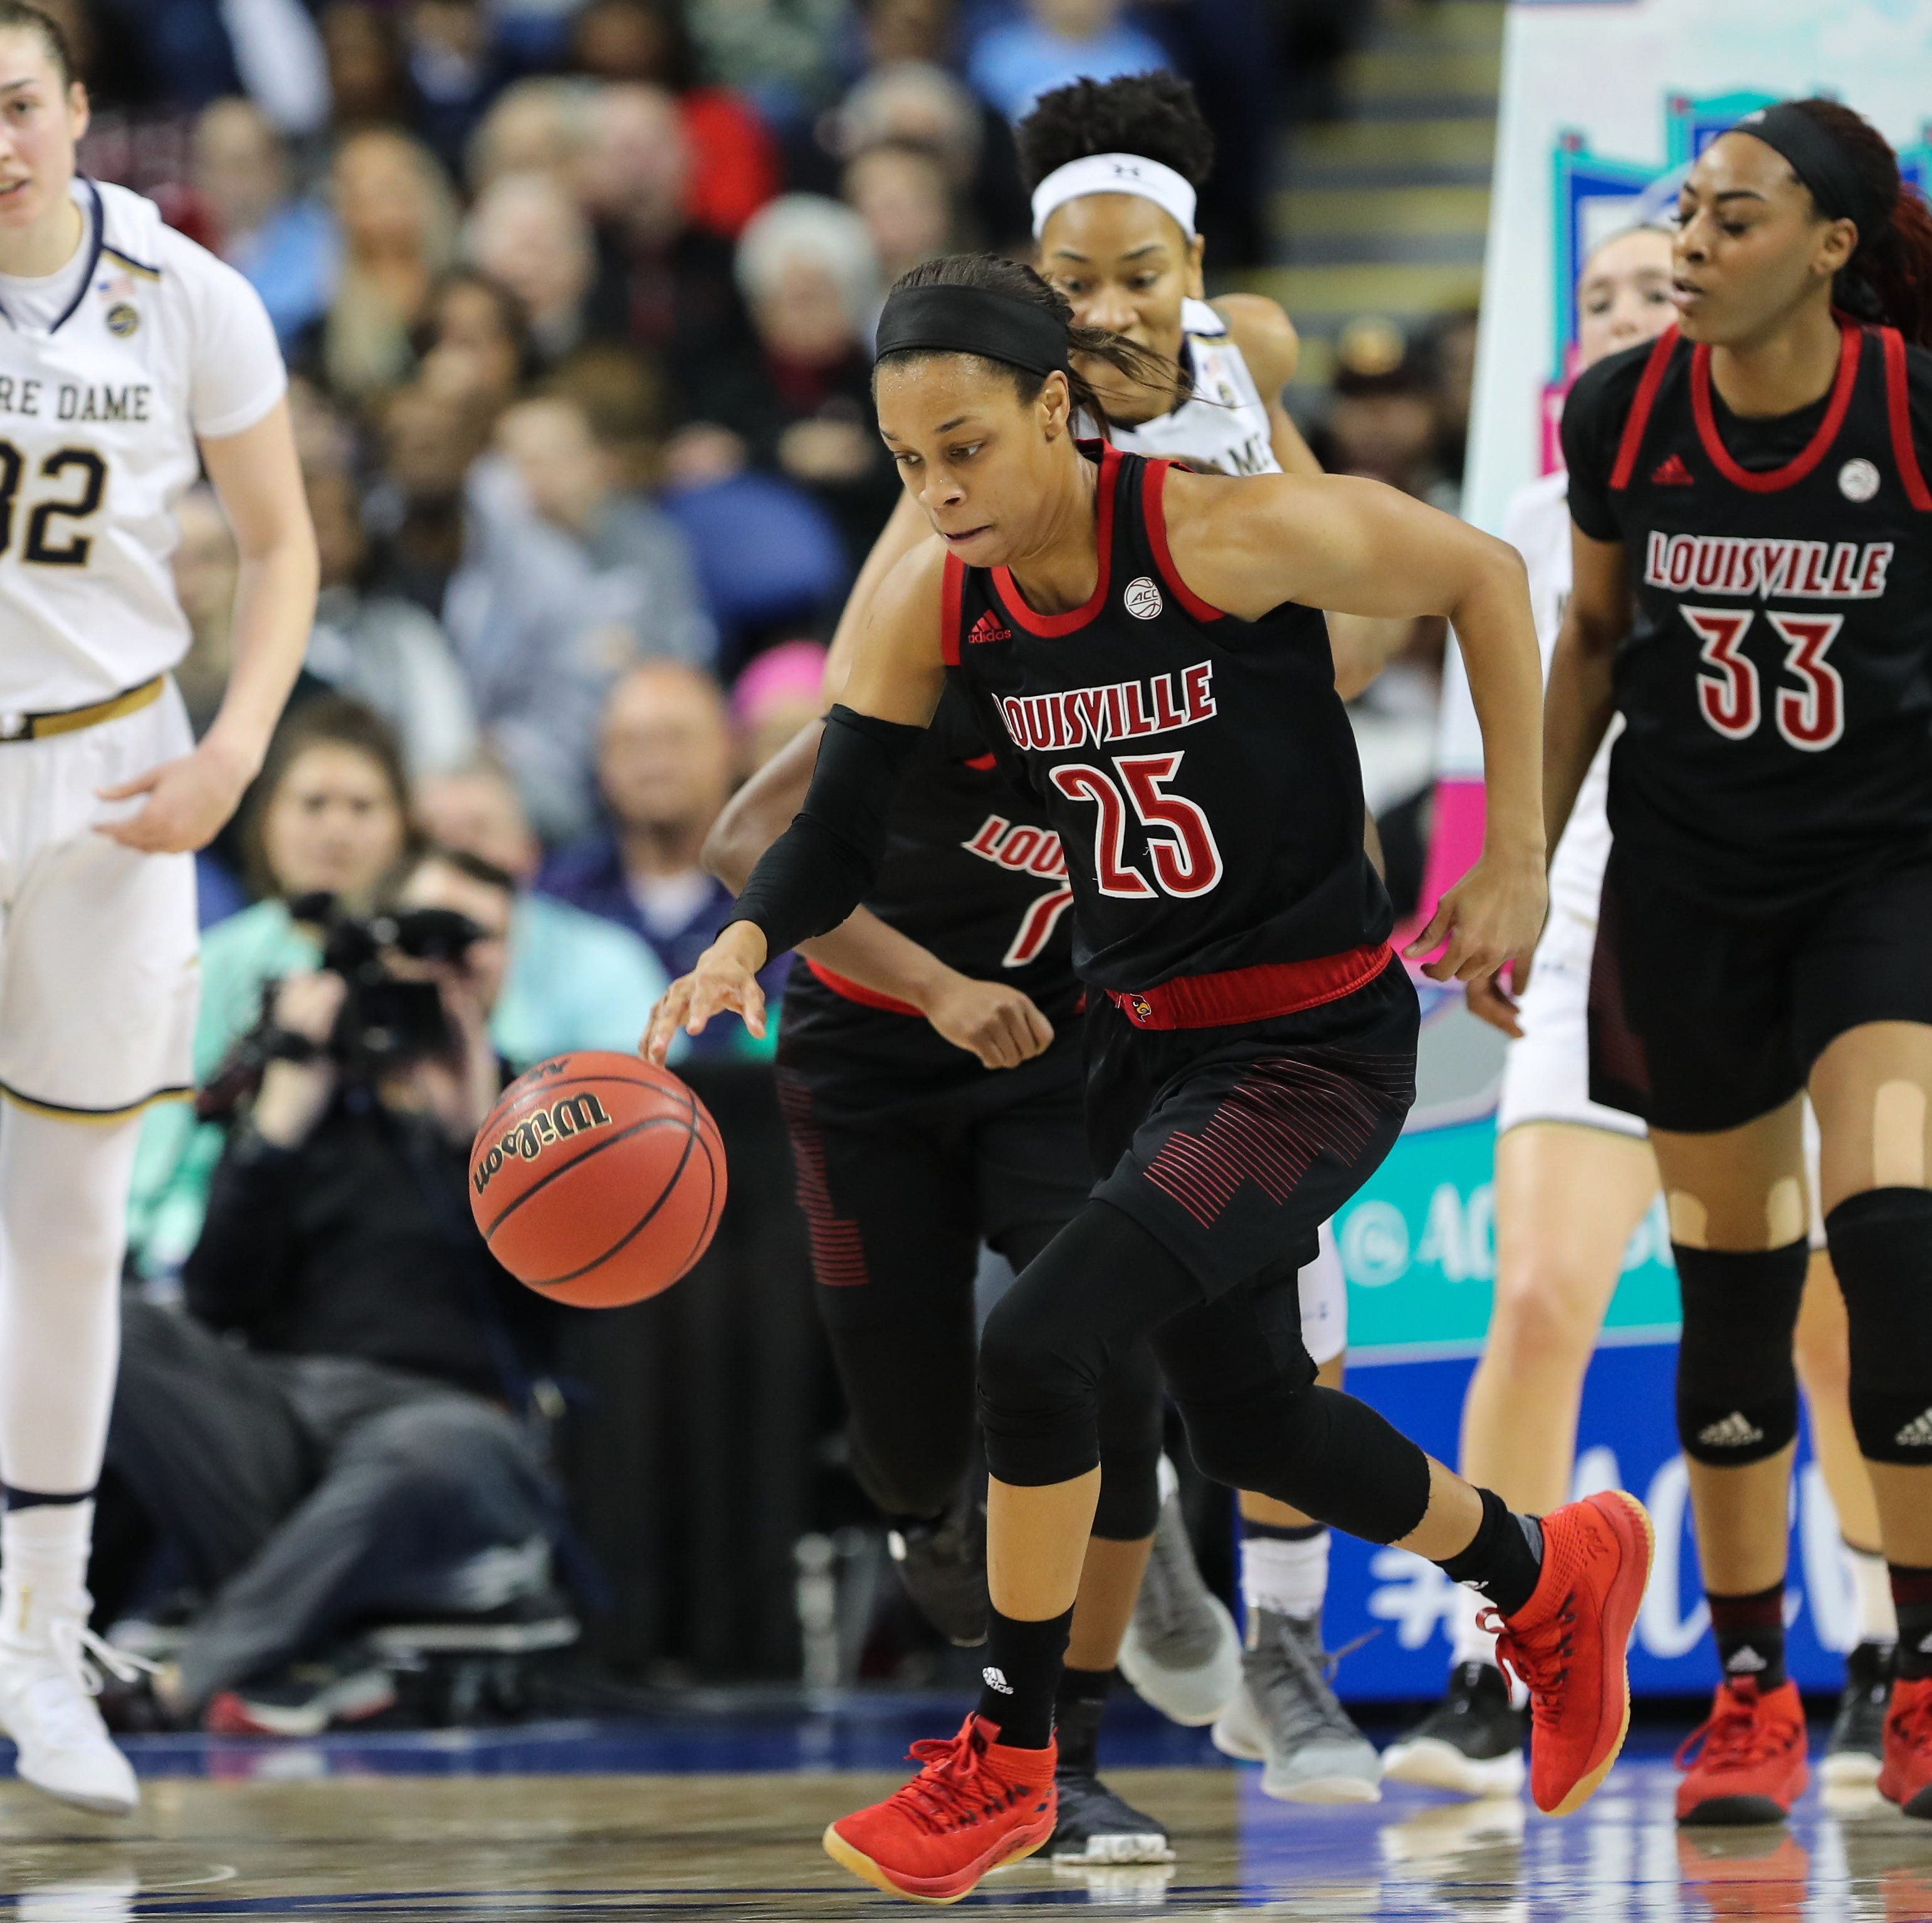 Leaked NCAA women's tournament bracket shows Louisville as a No. 1 seed